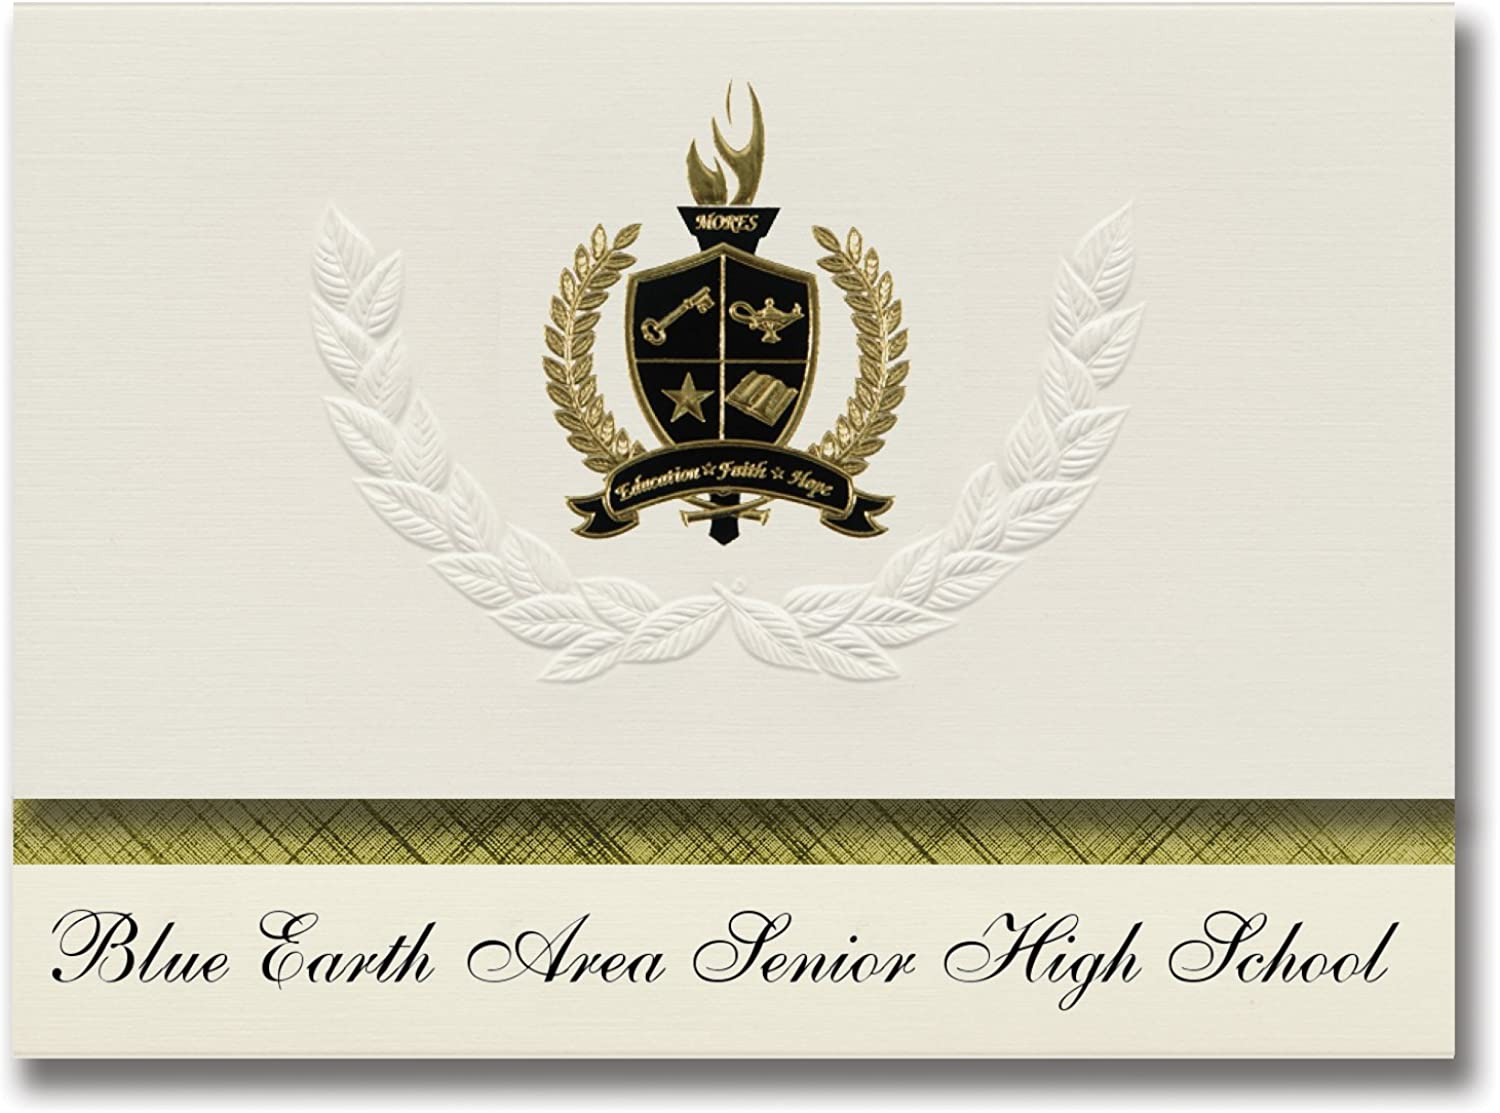 Signature Ankündigungen Blau Earth Bereich Senior High School School School (Blau Earth, MN) Graduation Ankündigungen, Presidential Elite Pack 25 mit Gold & Schwarz Metallic Folie Dichtung B078TNDTQJ | Spezielle Funktion